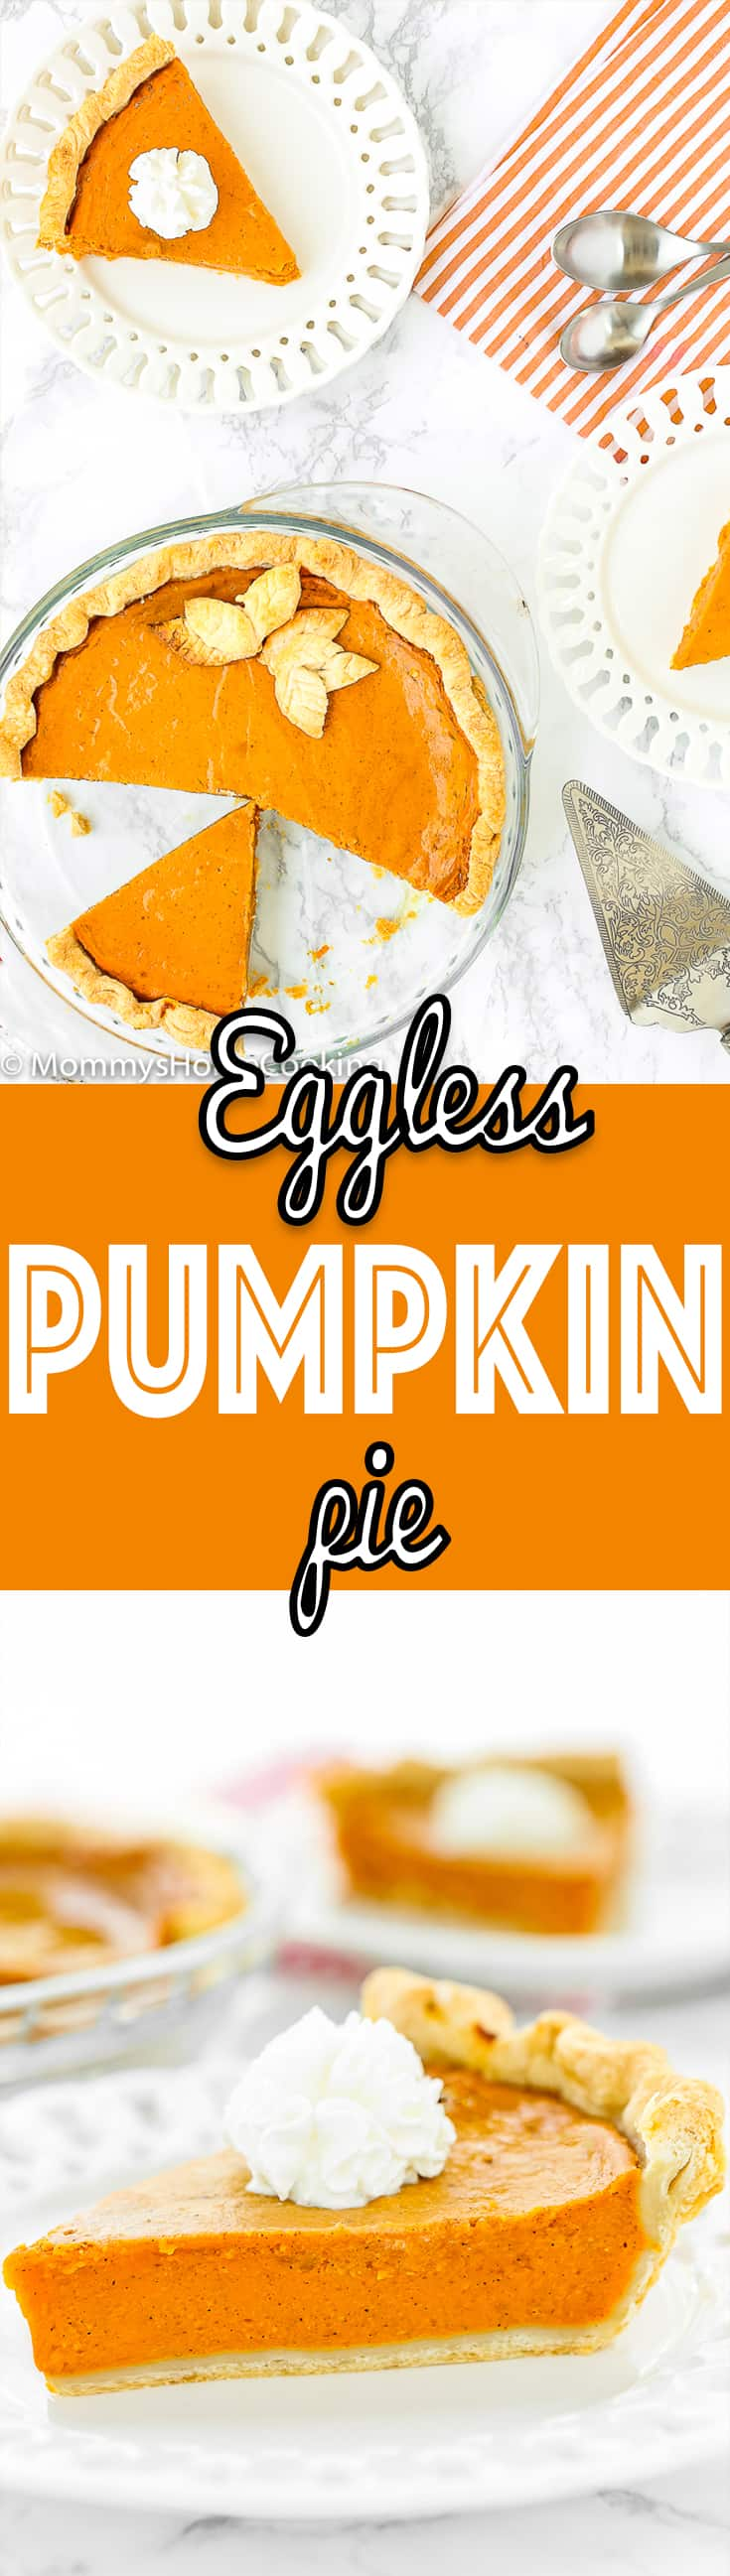 This Easy Eggless Pumpkin Pie is rich, smooth and spiced! Seriously amazing. It's super easy to make, too! Definitely a MUST-MAKE for the holidays. https://mommyshomecooking.com